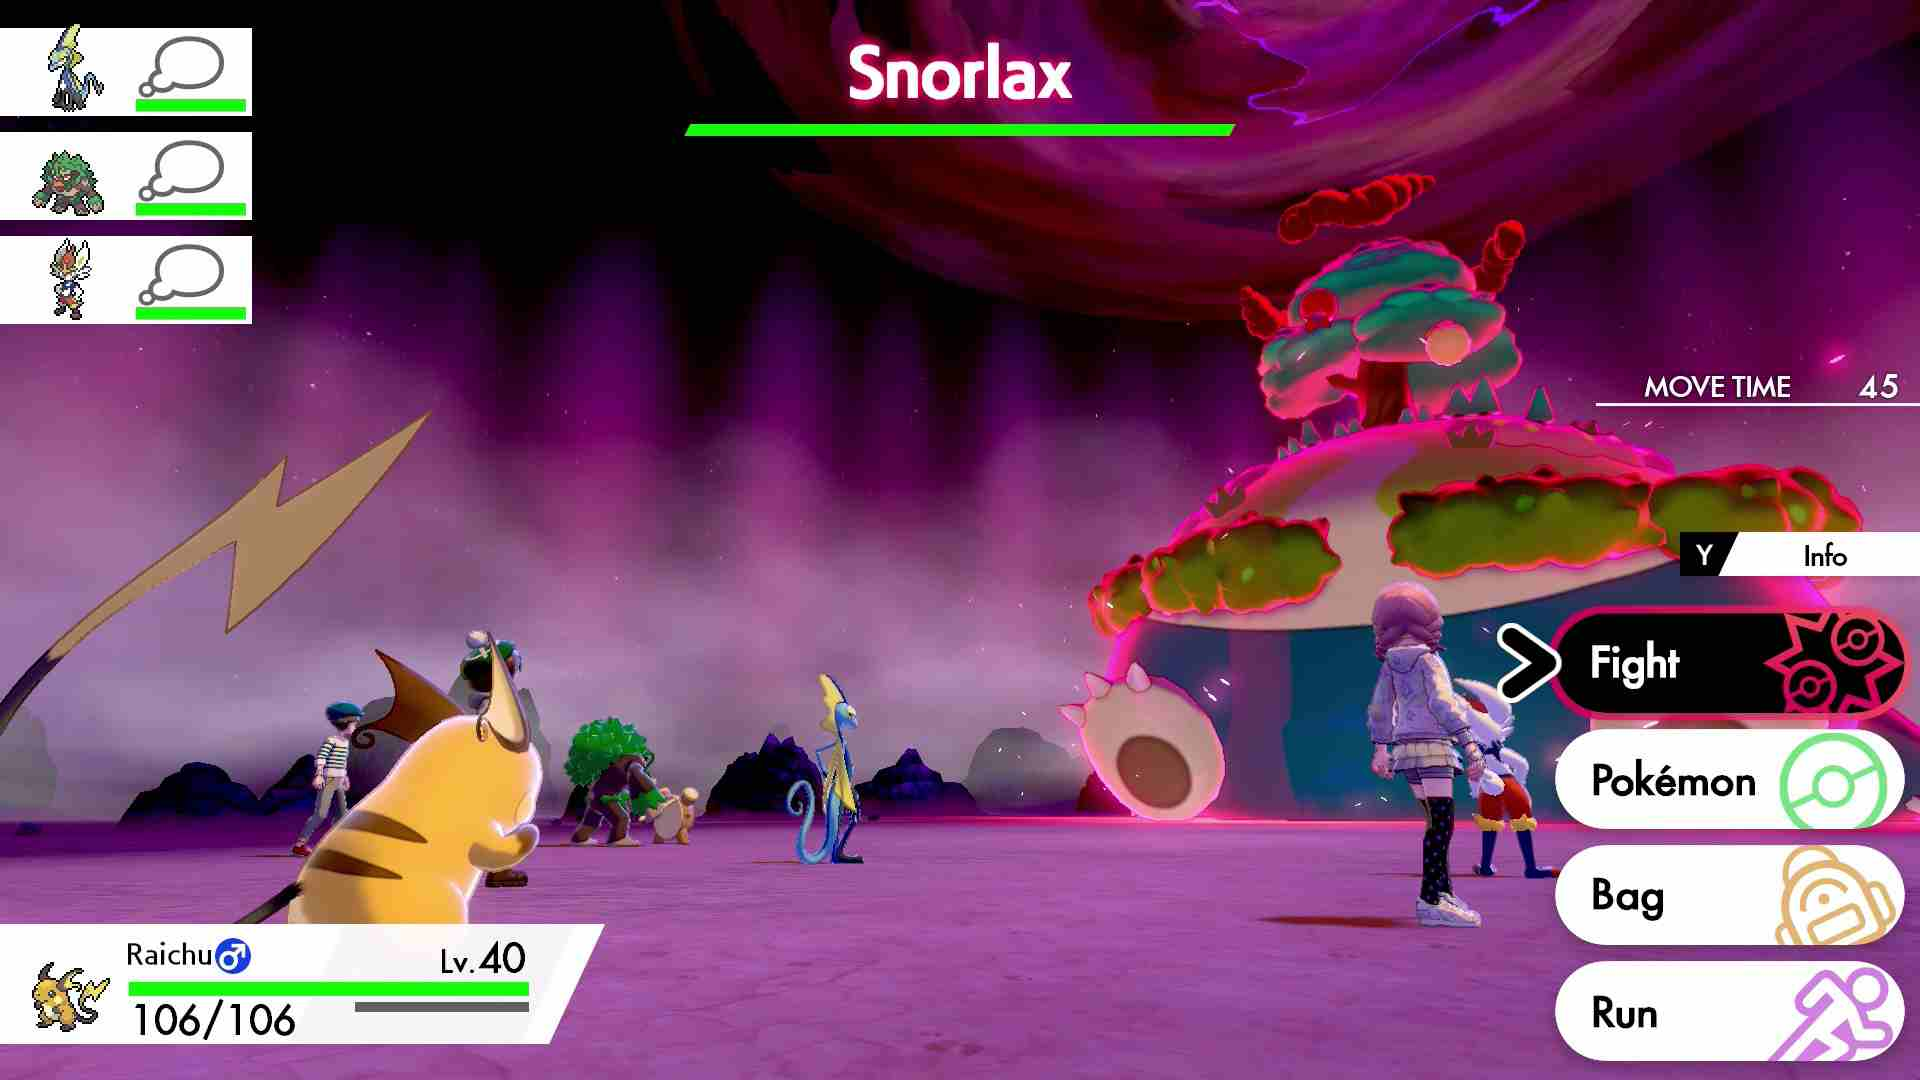 Pokemon Sword and Shield : How to get Gigantamax Snorlax in the game & its location